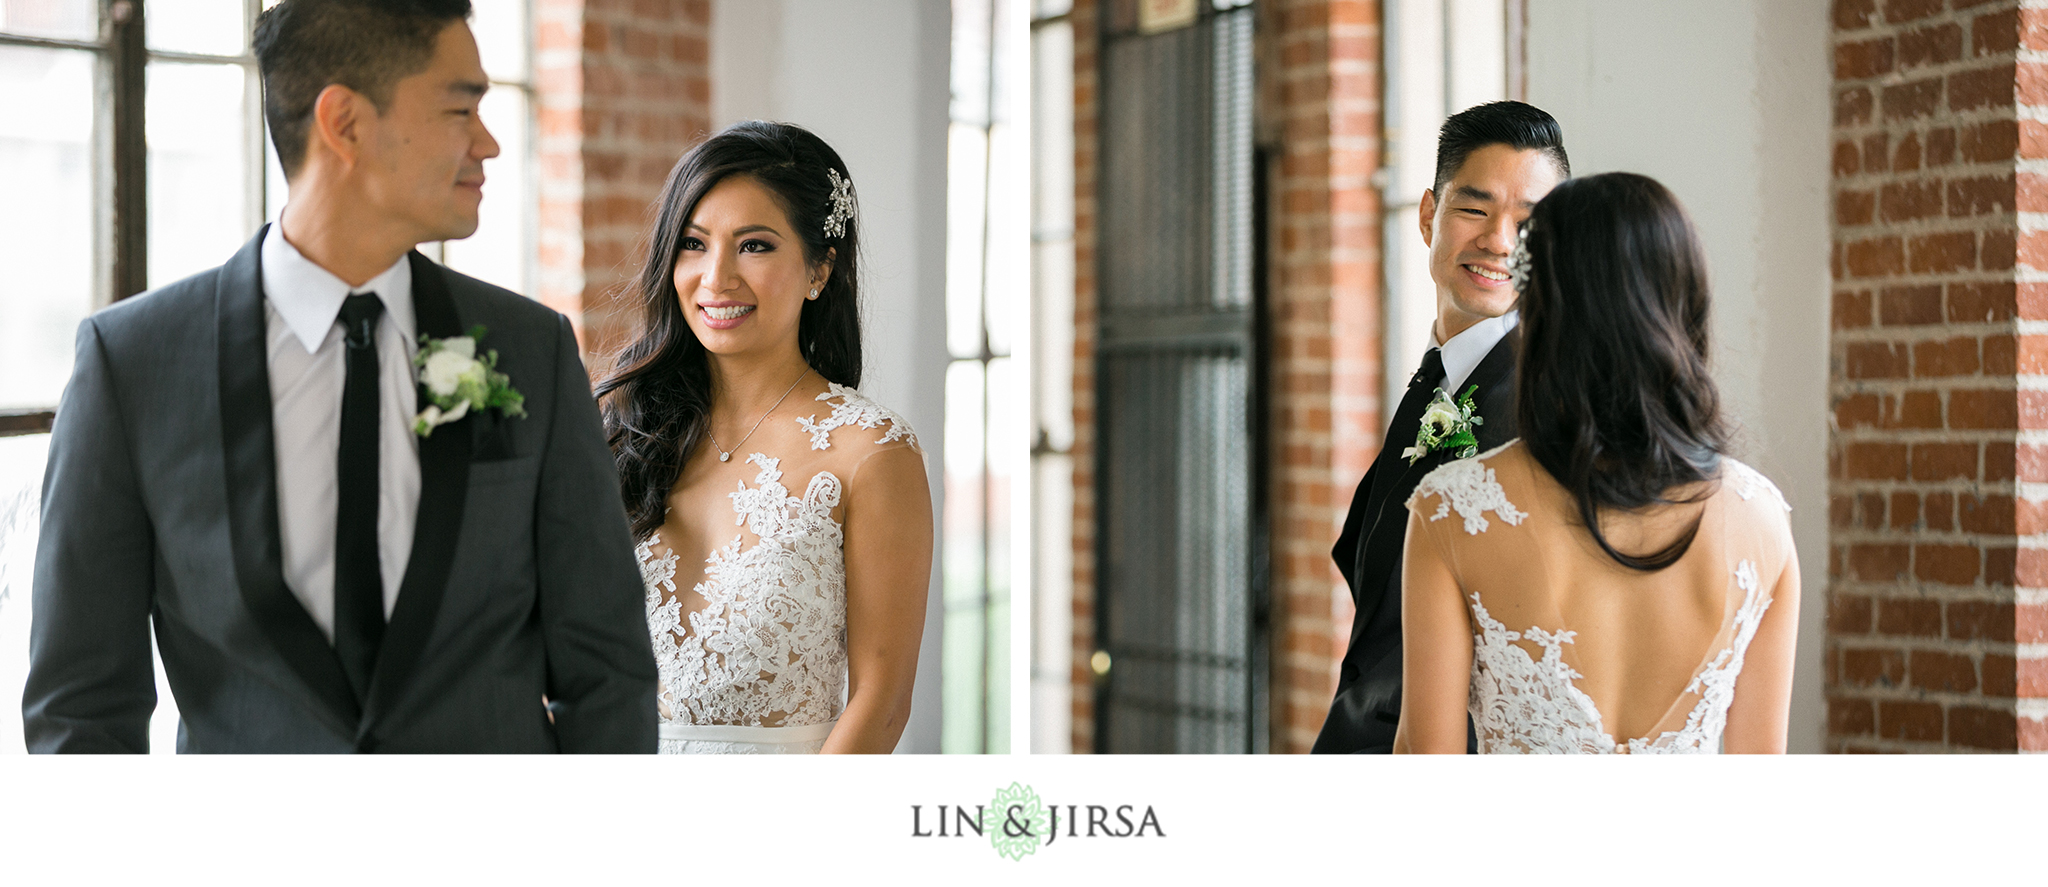 10-hudson-loft-downtown-los-angeles-wedding-photography